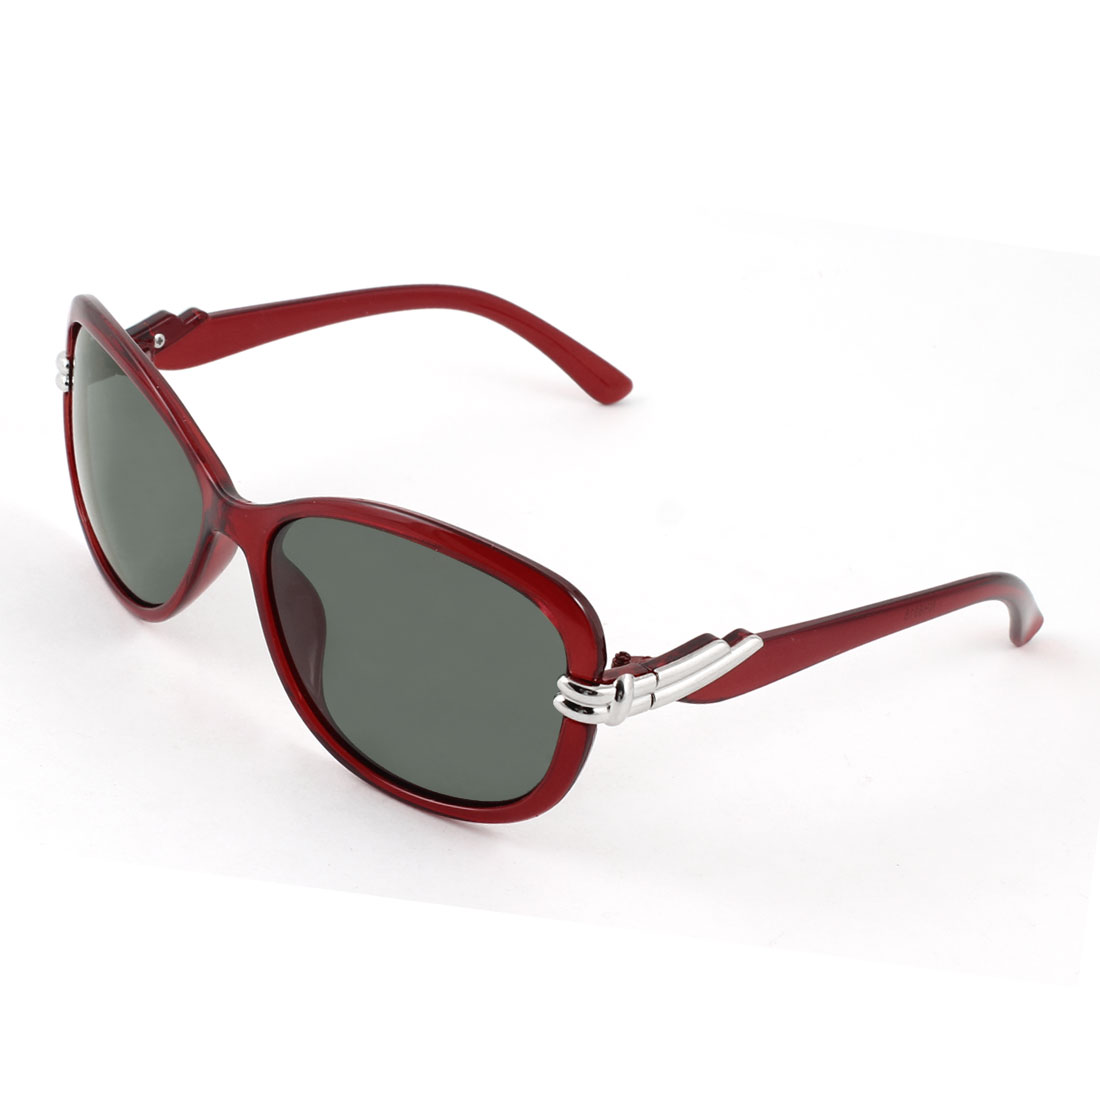 Lady Teardrop Shape Gray Lens Eyeglasses Polarized Sunglasses Burgundy